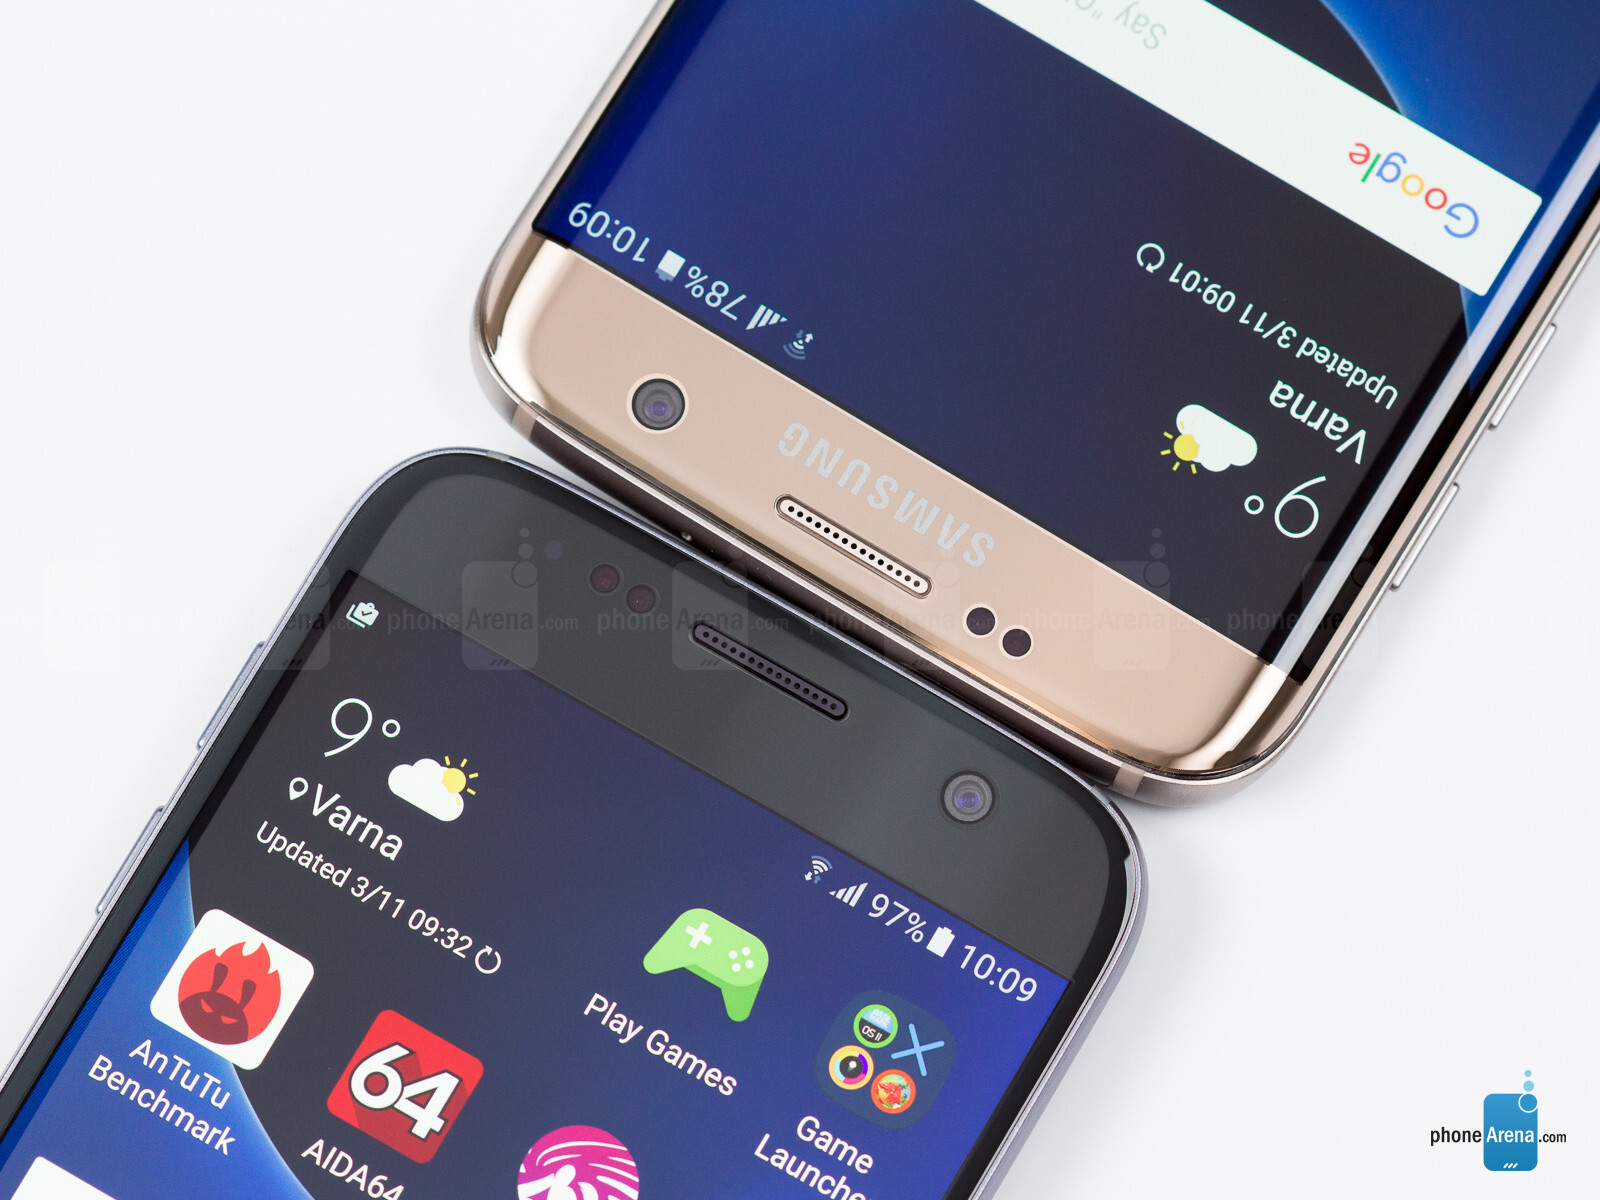 samsung galaxy s7 edge vs galaxy s7 call quality. Black Bedroom Furniture Sets. Home Design Ideas